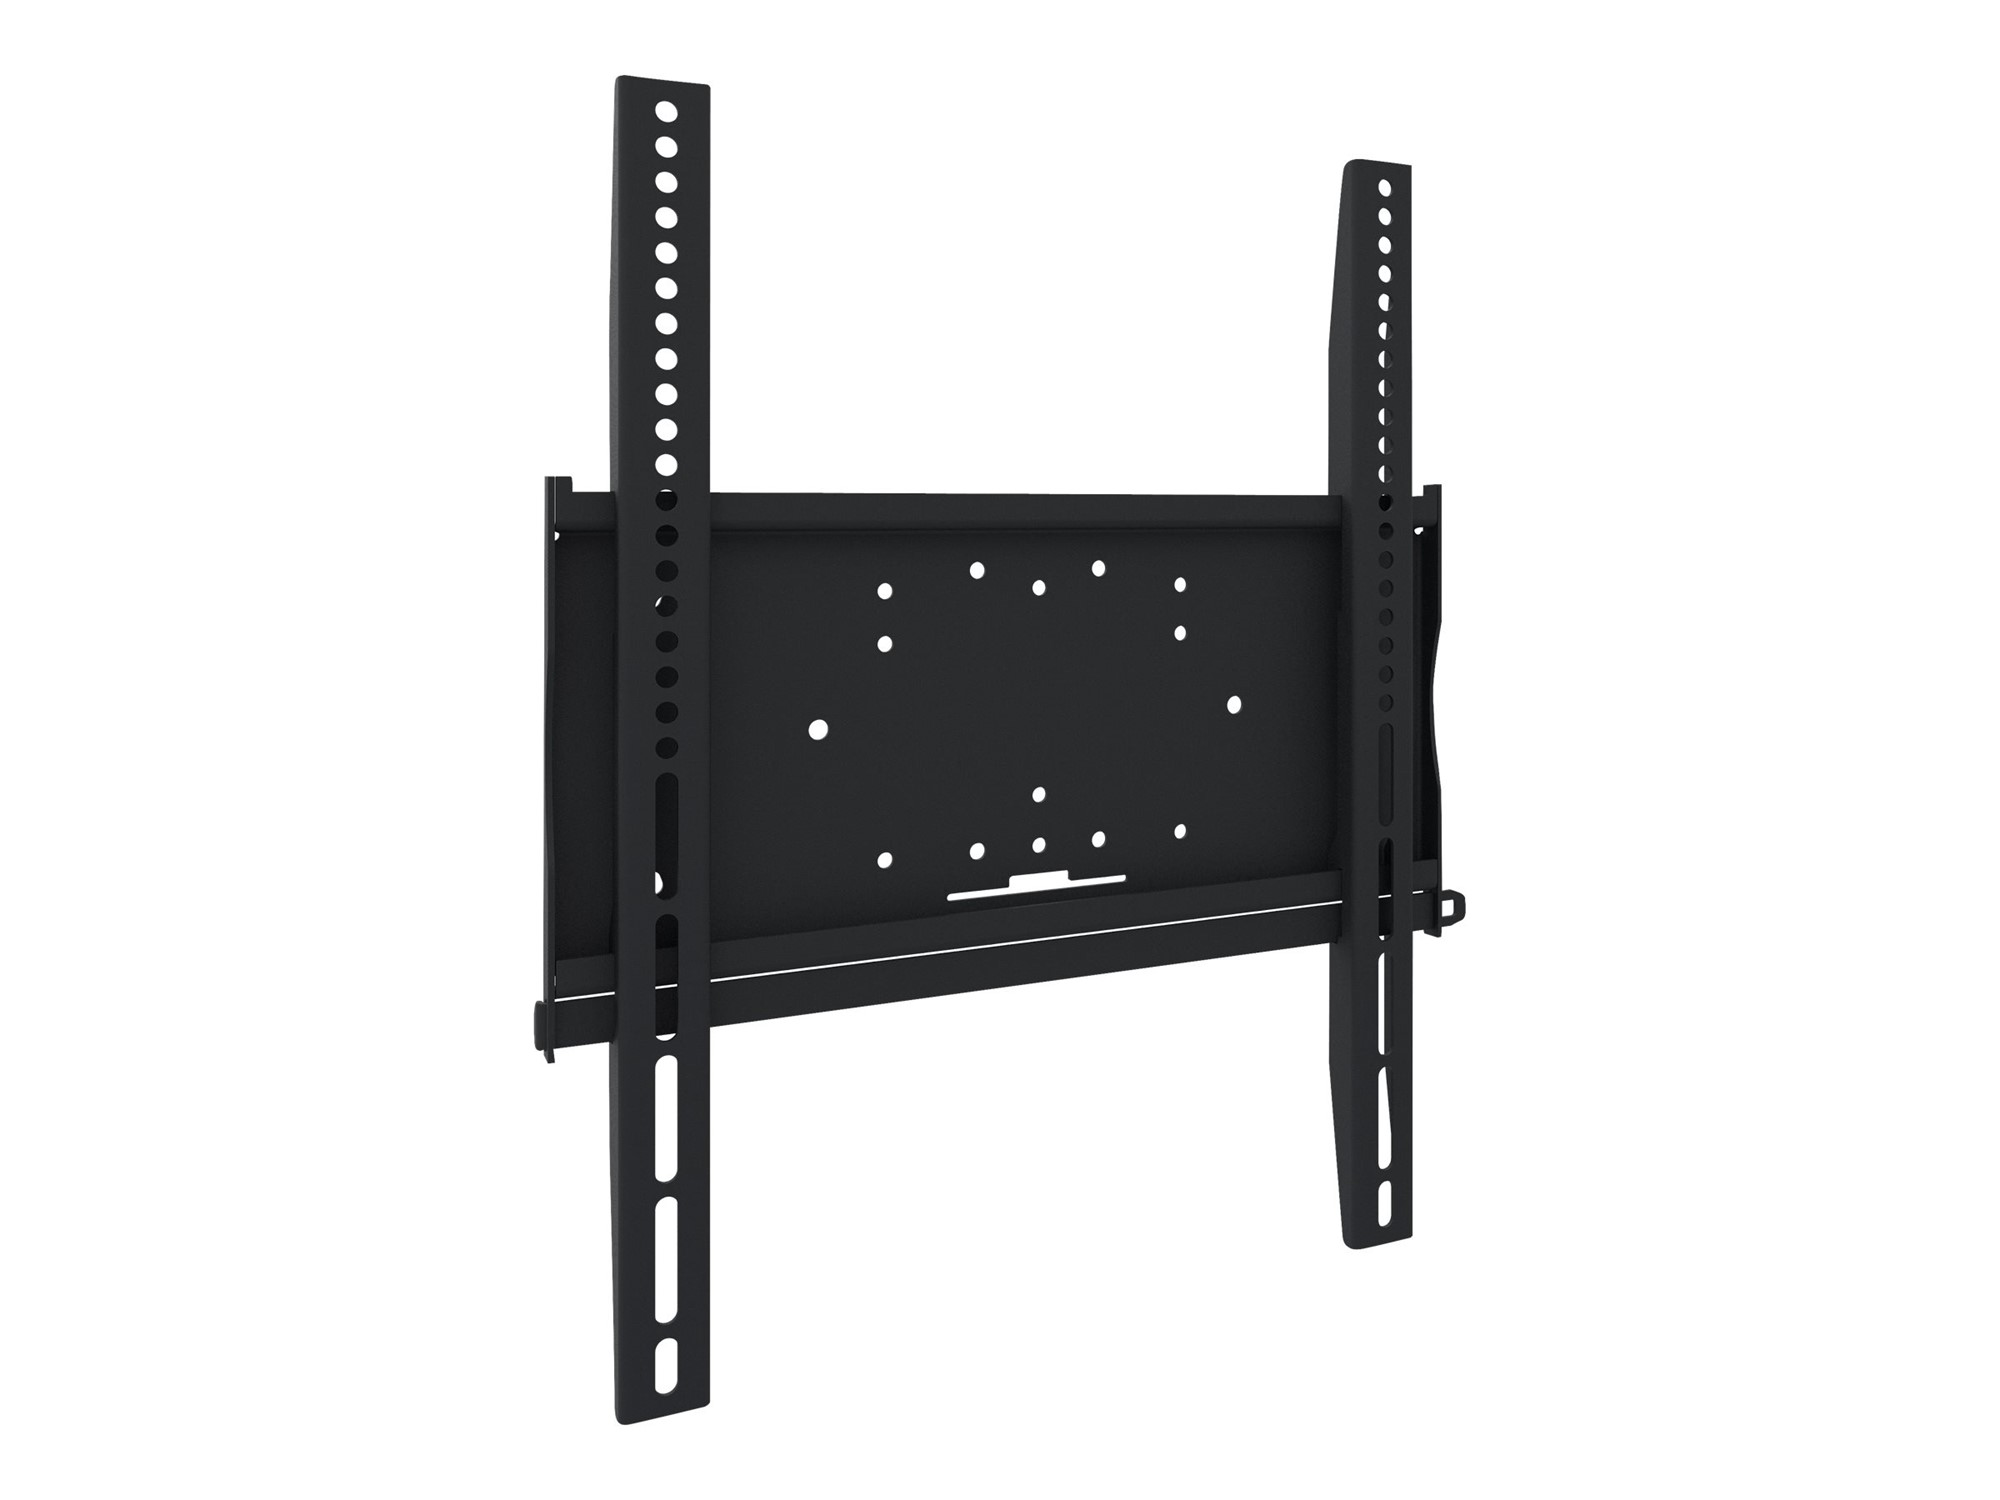 iiyama MD 052B1010 Black flat panel wall mount